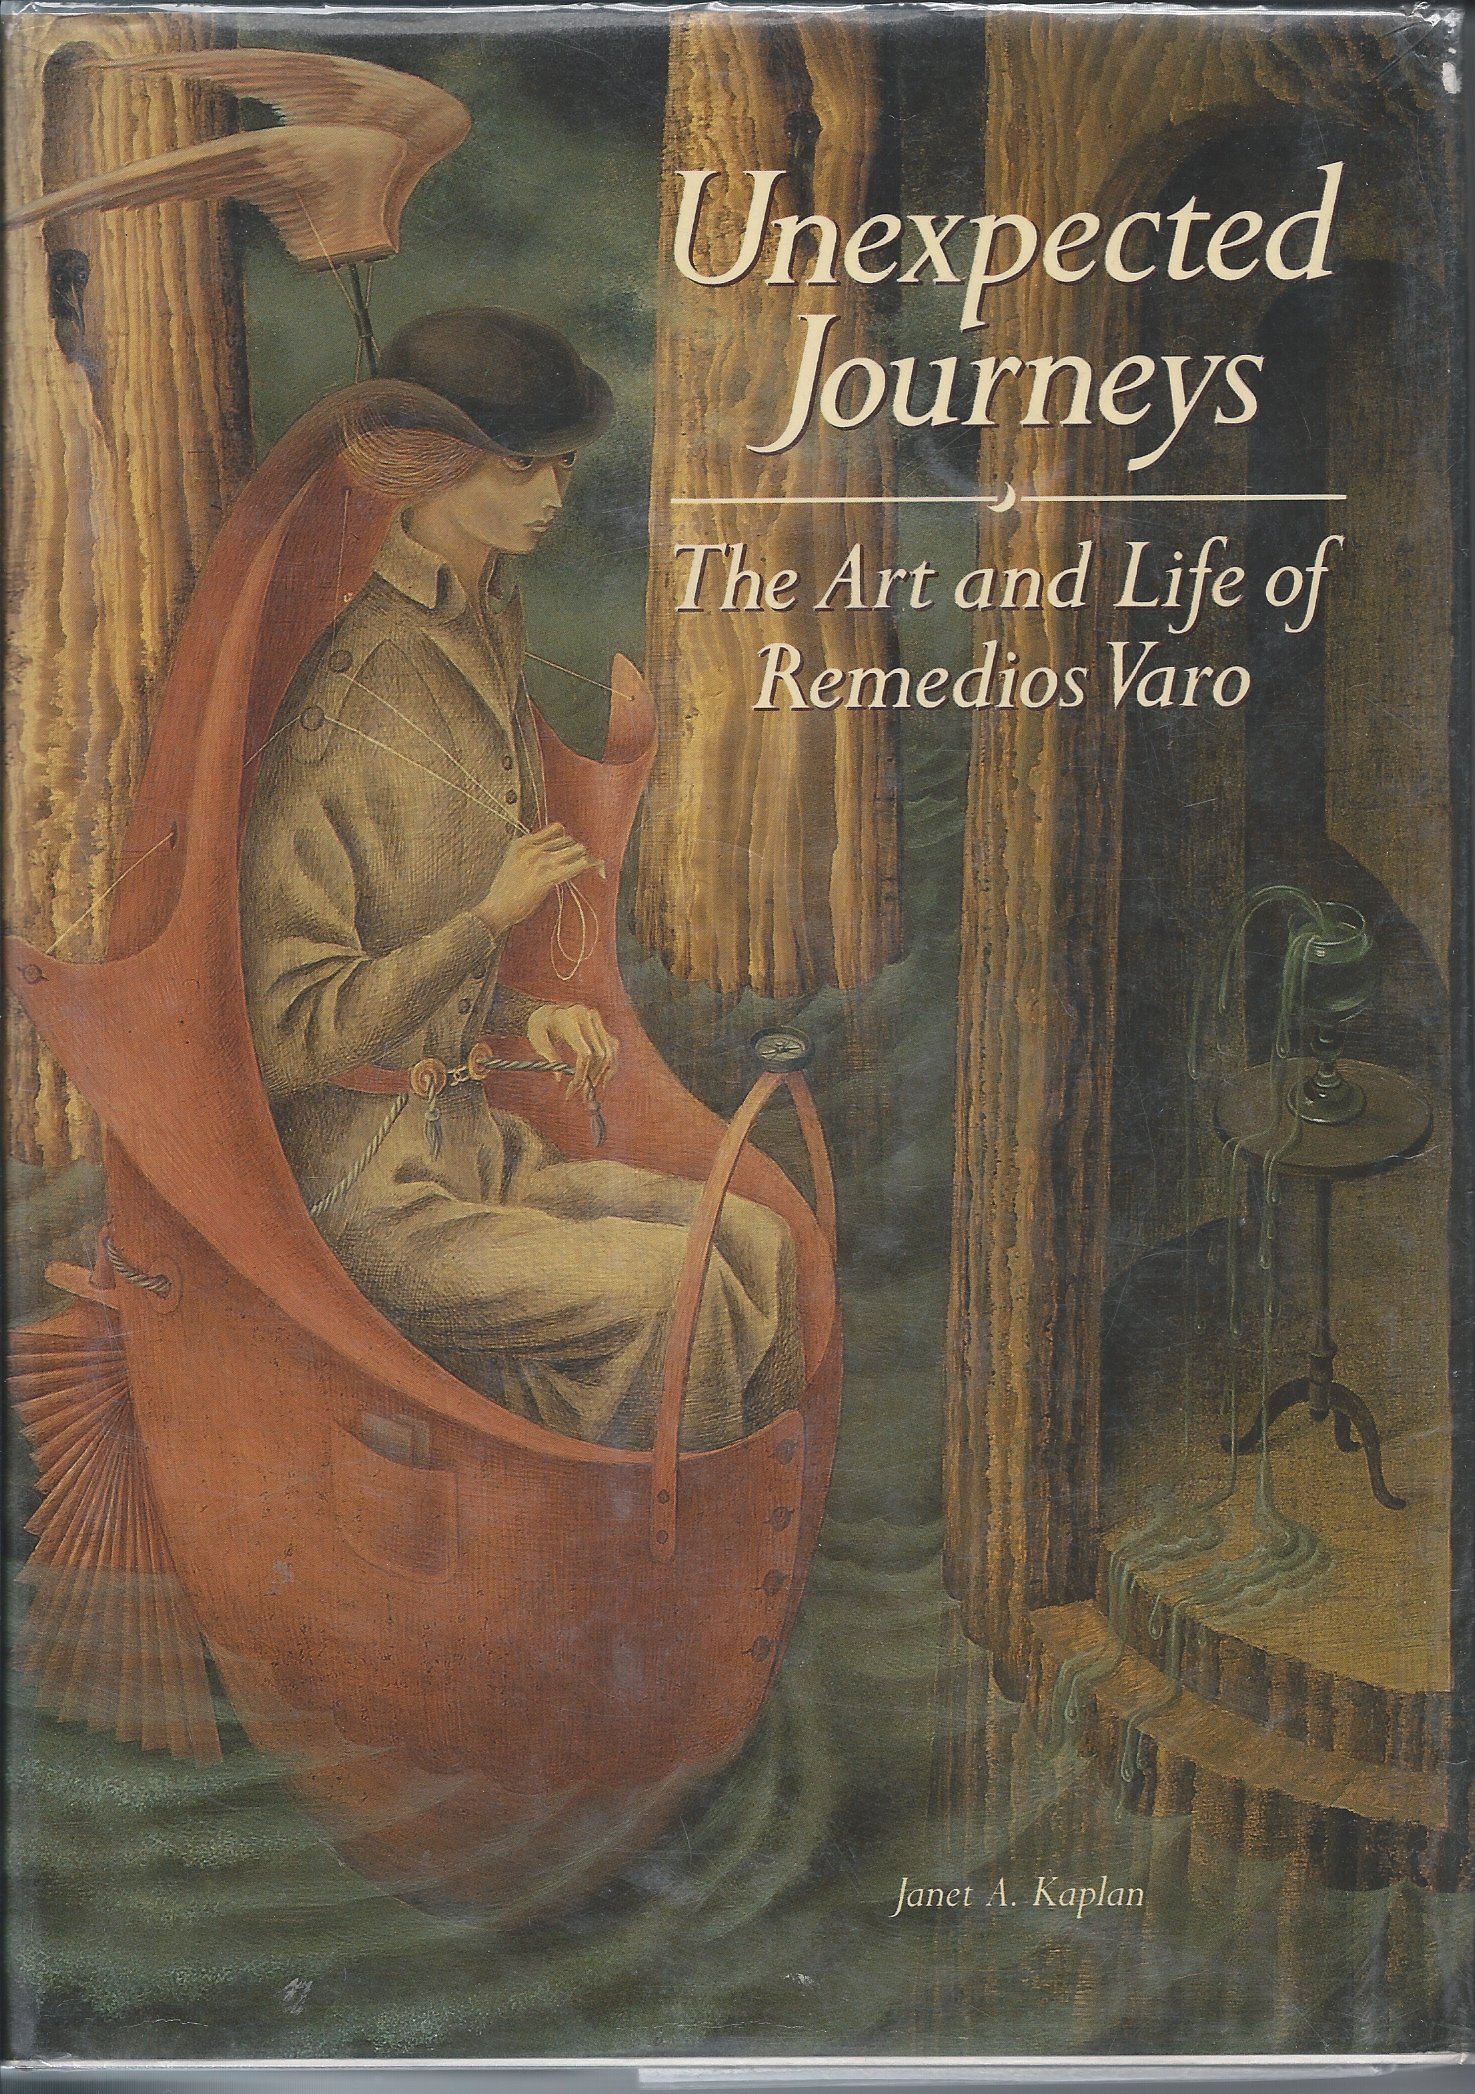 UNEXPECTED JOURNEYS: The Art and Life of Remedios Varo